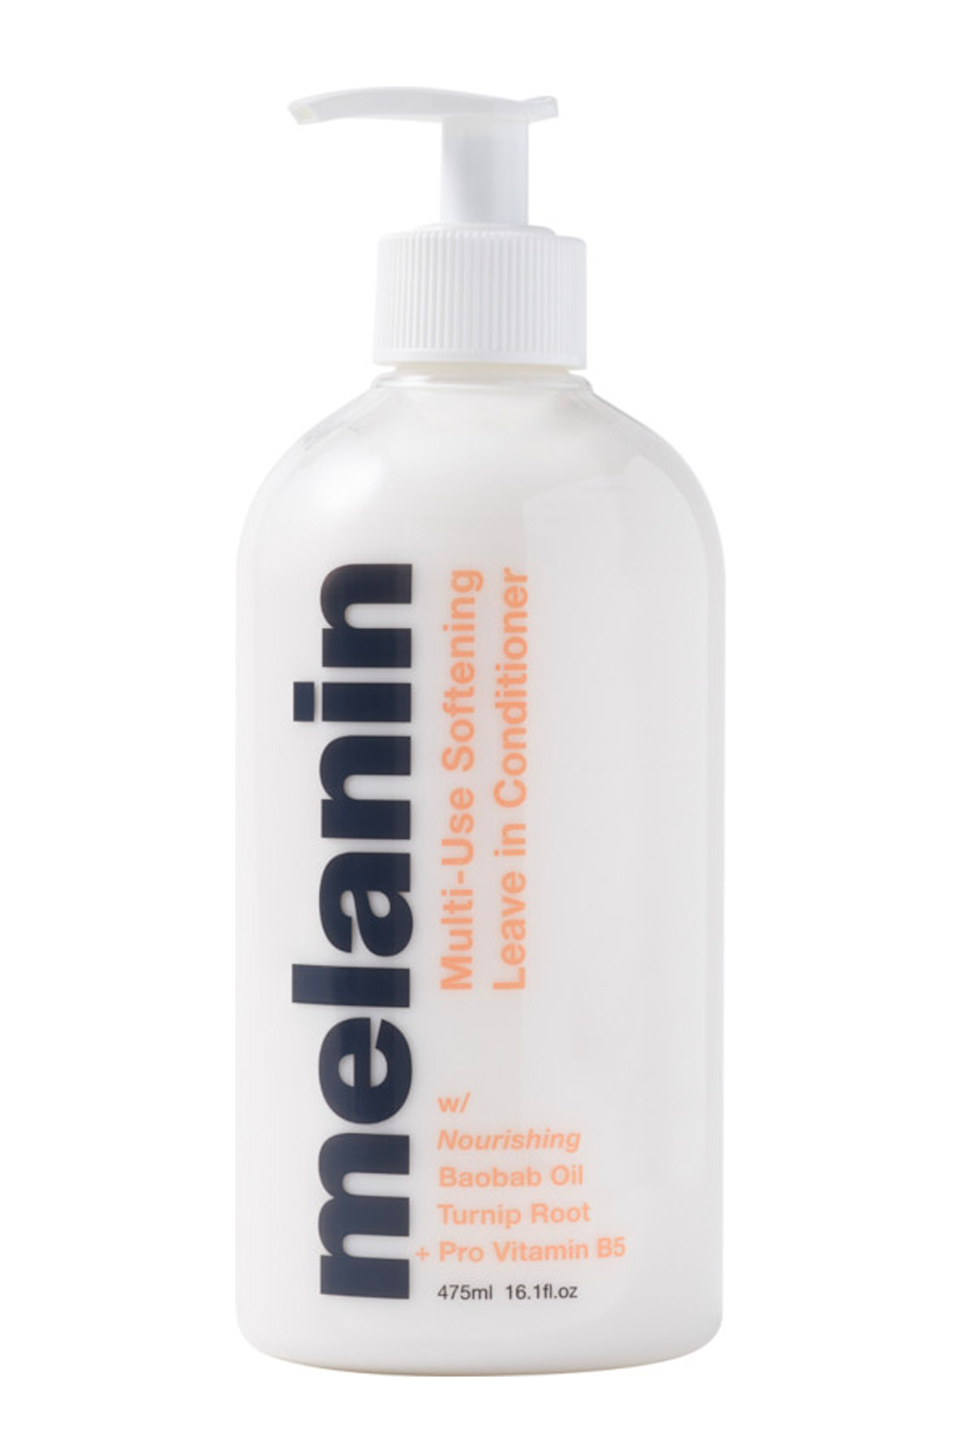 """<p><strong>Melanin Haircare</strong></p><p>ulta.com</p><p><strong>$18.99</strong></p><p><a href=""""https://go.redirectingat.com?id=74968X1596630&url=https%3A%2F%2Fwww.ulta.com%2Fmulti-use-softening-leave-in-conditioner%3FAID%3D165159%26CID%3Daf_165159_10078_%26PID%3D10078%26SubID%3Dcosmopolitan.com%26clickId%3DUzJ0wbRo9xyOWRYwUx0Mo38VUkEX37RU00000w0%26irgwc%3D1%26productId%3Dpimprod2018201&sref=https%3A%2F%2Fwww.cosmopolitan.com%2Fstyle-beauty%2Fbeauty%2Fg36027428%2Fbest-detanglers-for-curly-hair%2F"""" rel=""""nofollow noopener"""" target=""""_blank"""" data-ylk=""""slk:Shop Now"""" class=""""link rapid-noclick-resp"""">Shop Now</a></p><p>TBH, there's not a whole lot this leave-in conditioner <em>can't</em> do. Smooth it through your damp hair and it'll help<strong> detangle, soften, and even <em>strengthen</em> your curls</strong> with a blend of vitamin B5, amino acids, chamomile, and hydrating oils (see: argan and jojoba). P.S. This formula also moonlights as an excellent <a href=""""https://www.cosmopolitan.com/style-beauty/beauty/a35809146/prepoo-hair-care-tips/"""" rel=""""nofollow noopener"""" target=""""_blank"""" data-ylk=""""slk:pre-poo treatment"""" class=""""link rapid-noclick-resp"""">pre-poo treatment</a>.<br></p>"""